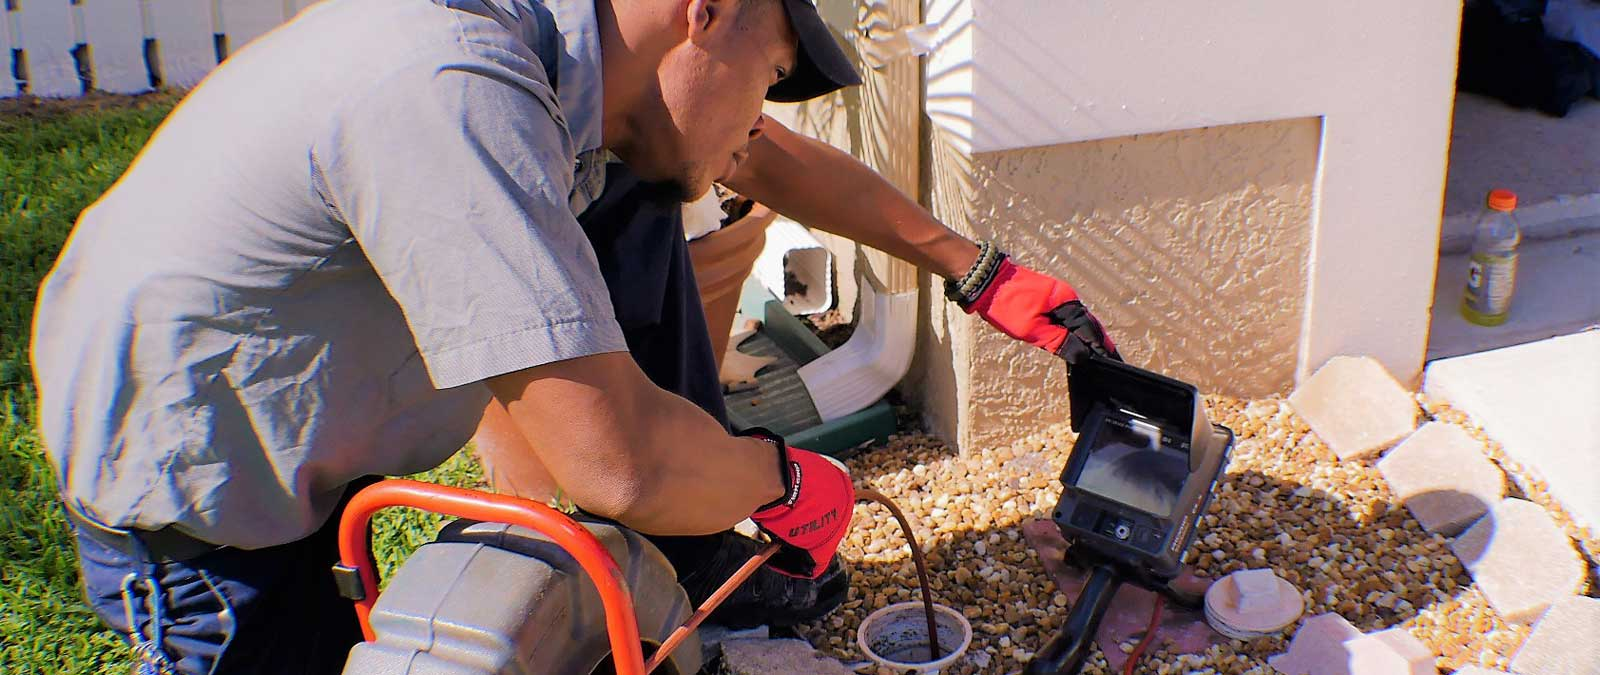 West Palm Beach, Fl Residential Plumbing Services